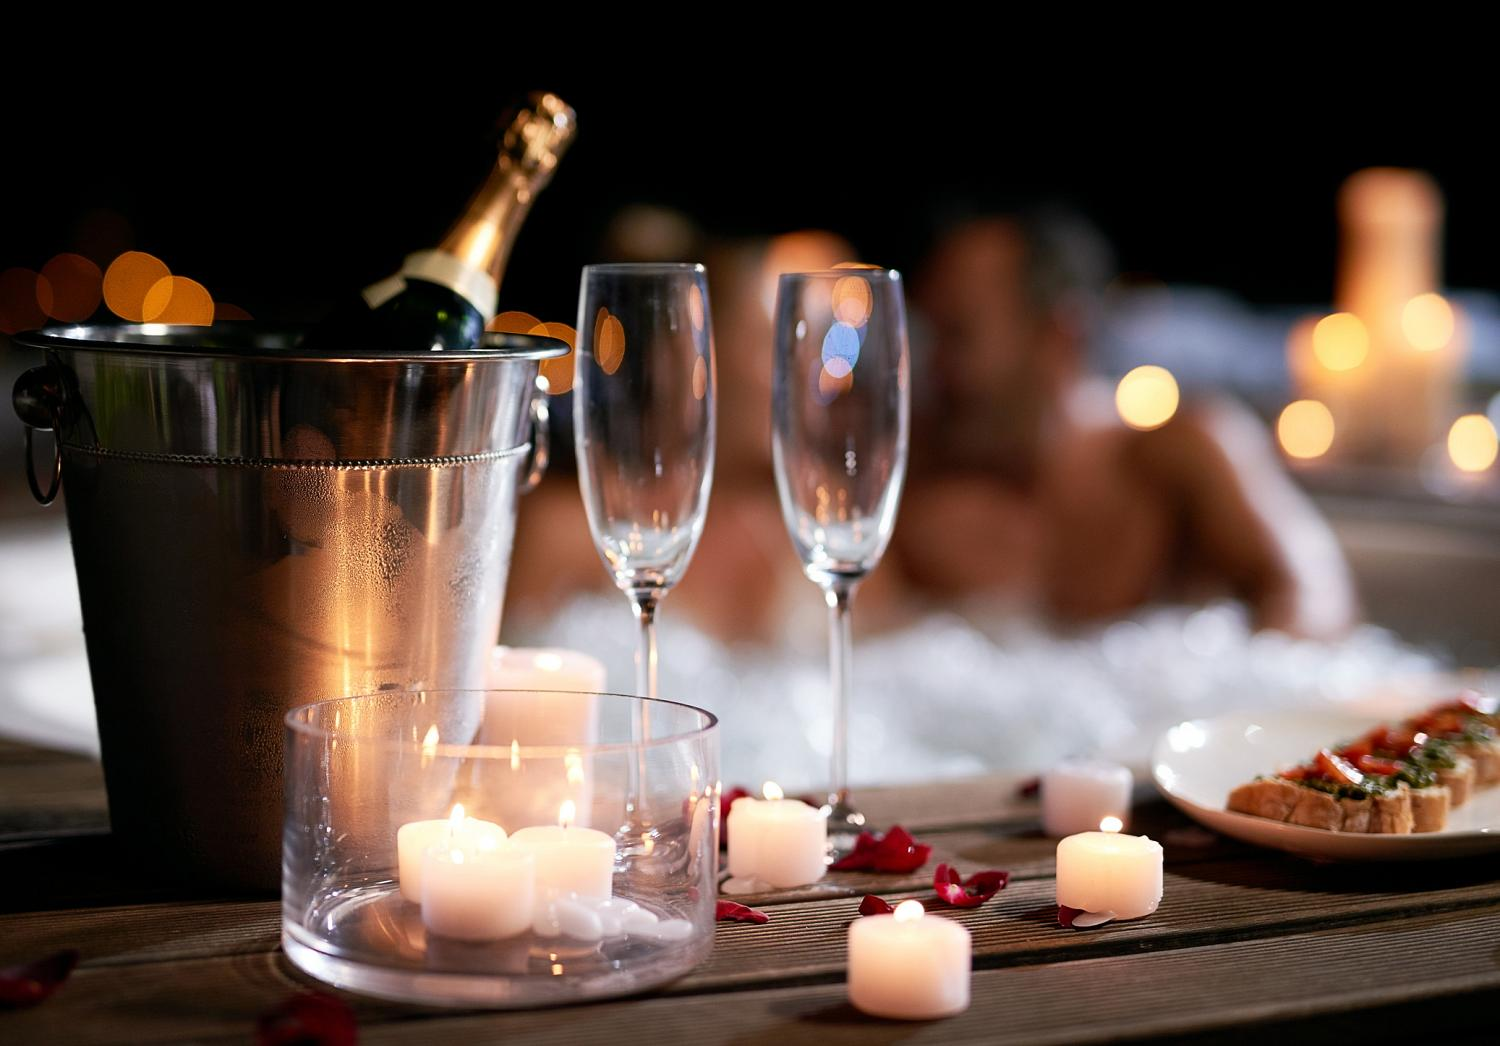 Enjoy a Hot Tub Date This Valentine's Day—5 Sensual Ideas Your Significant Other is Sure to Love